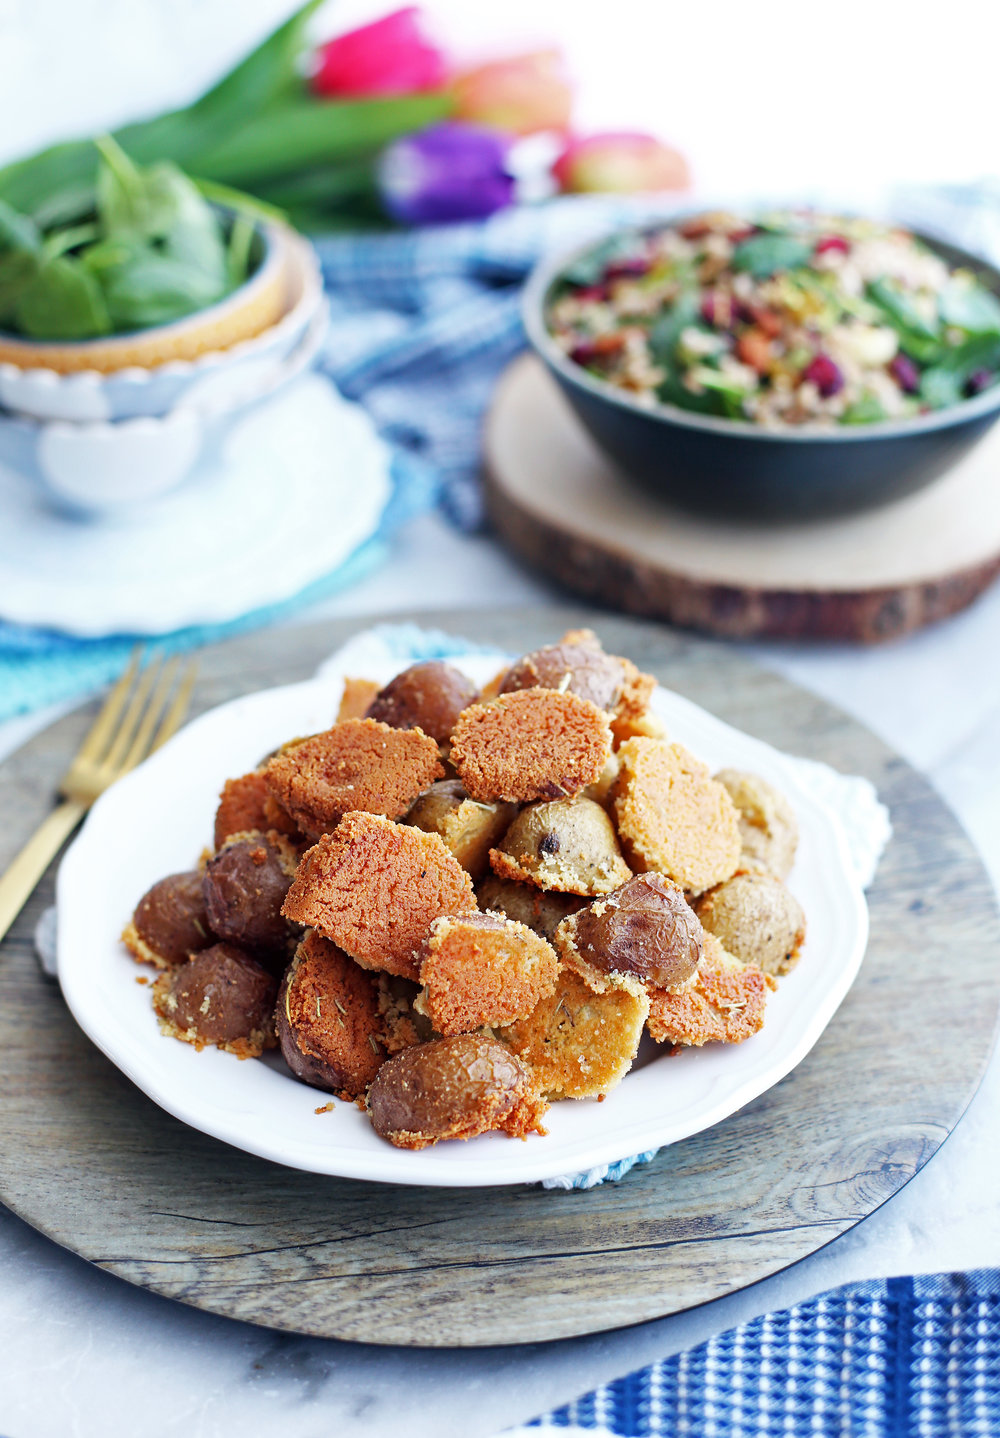 Crispy Parmesan Crusted Baby Potatoes piled on a white plate; a salad in a bowl behind it.